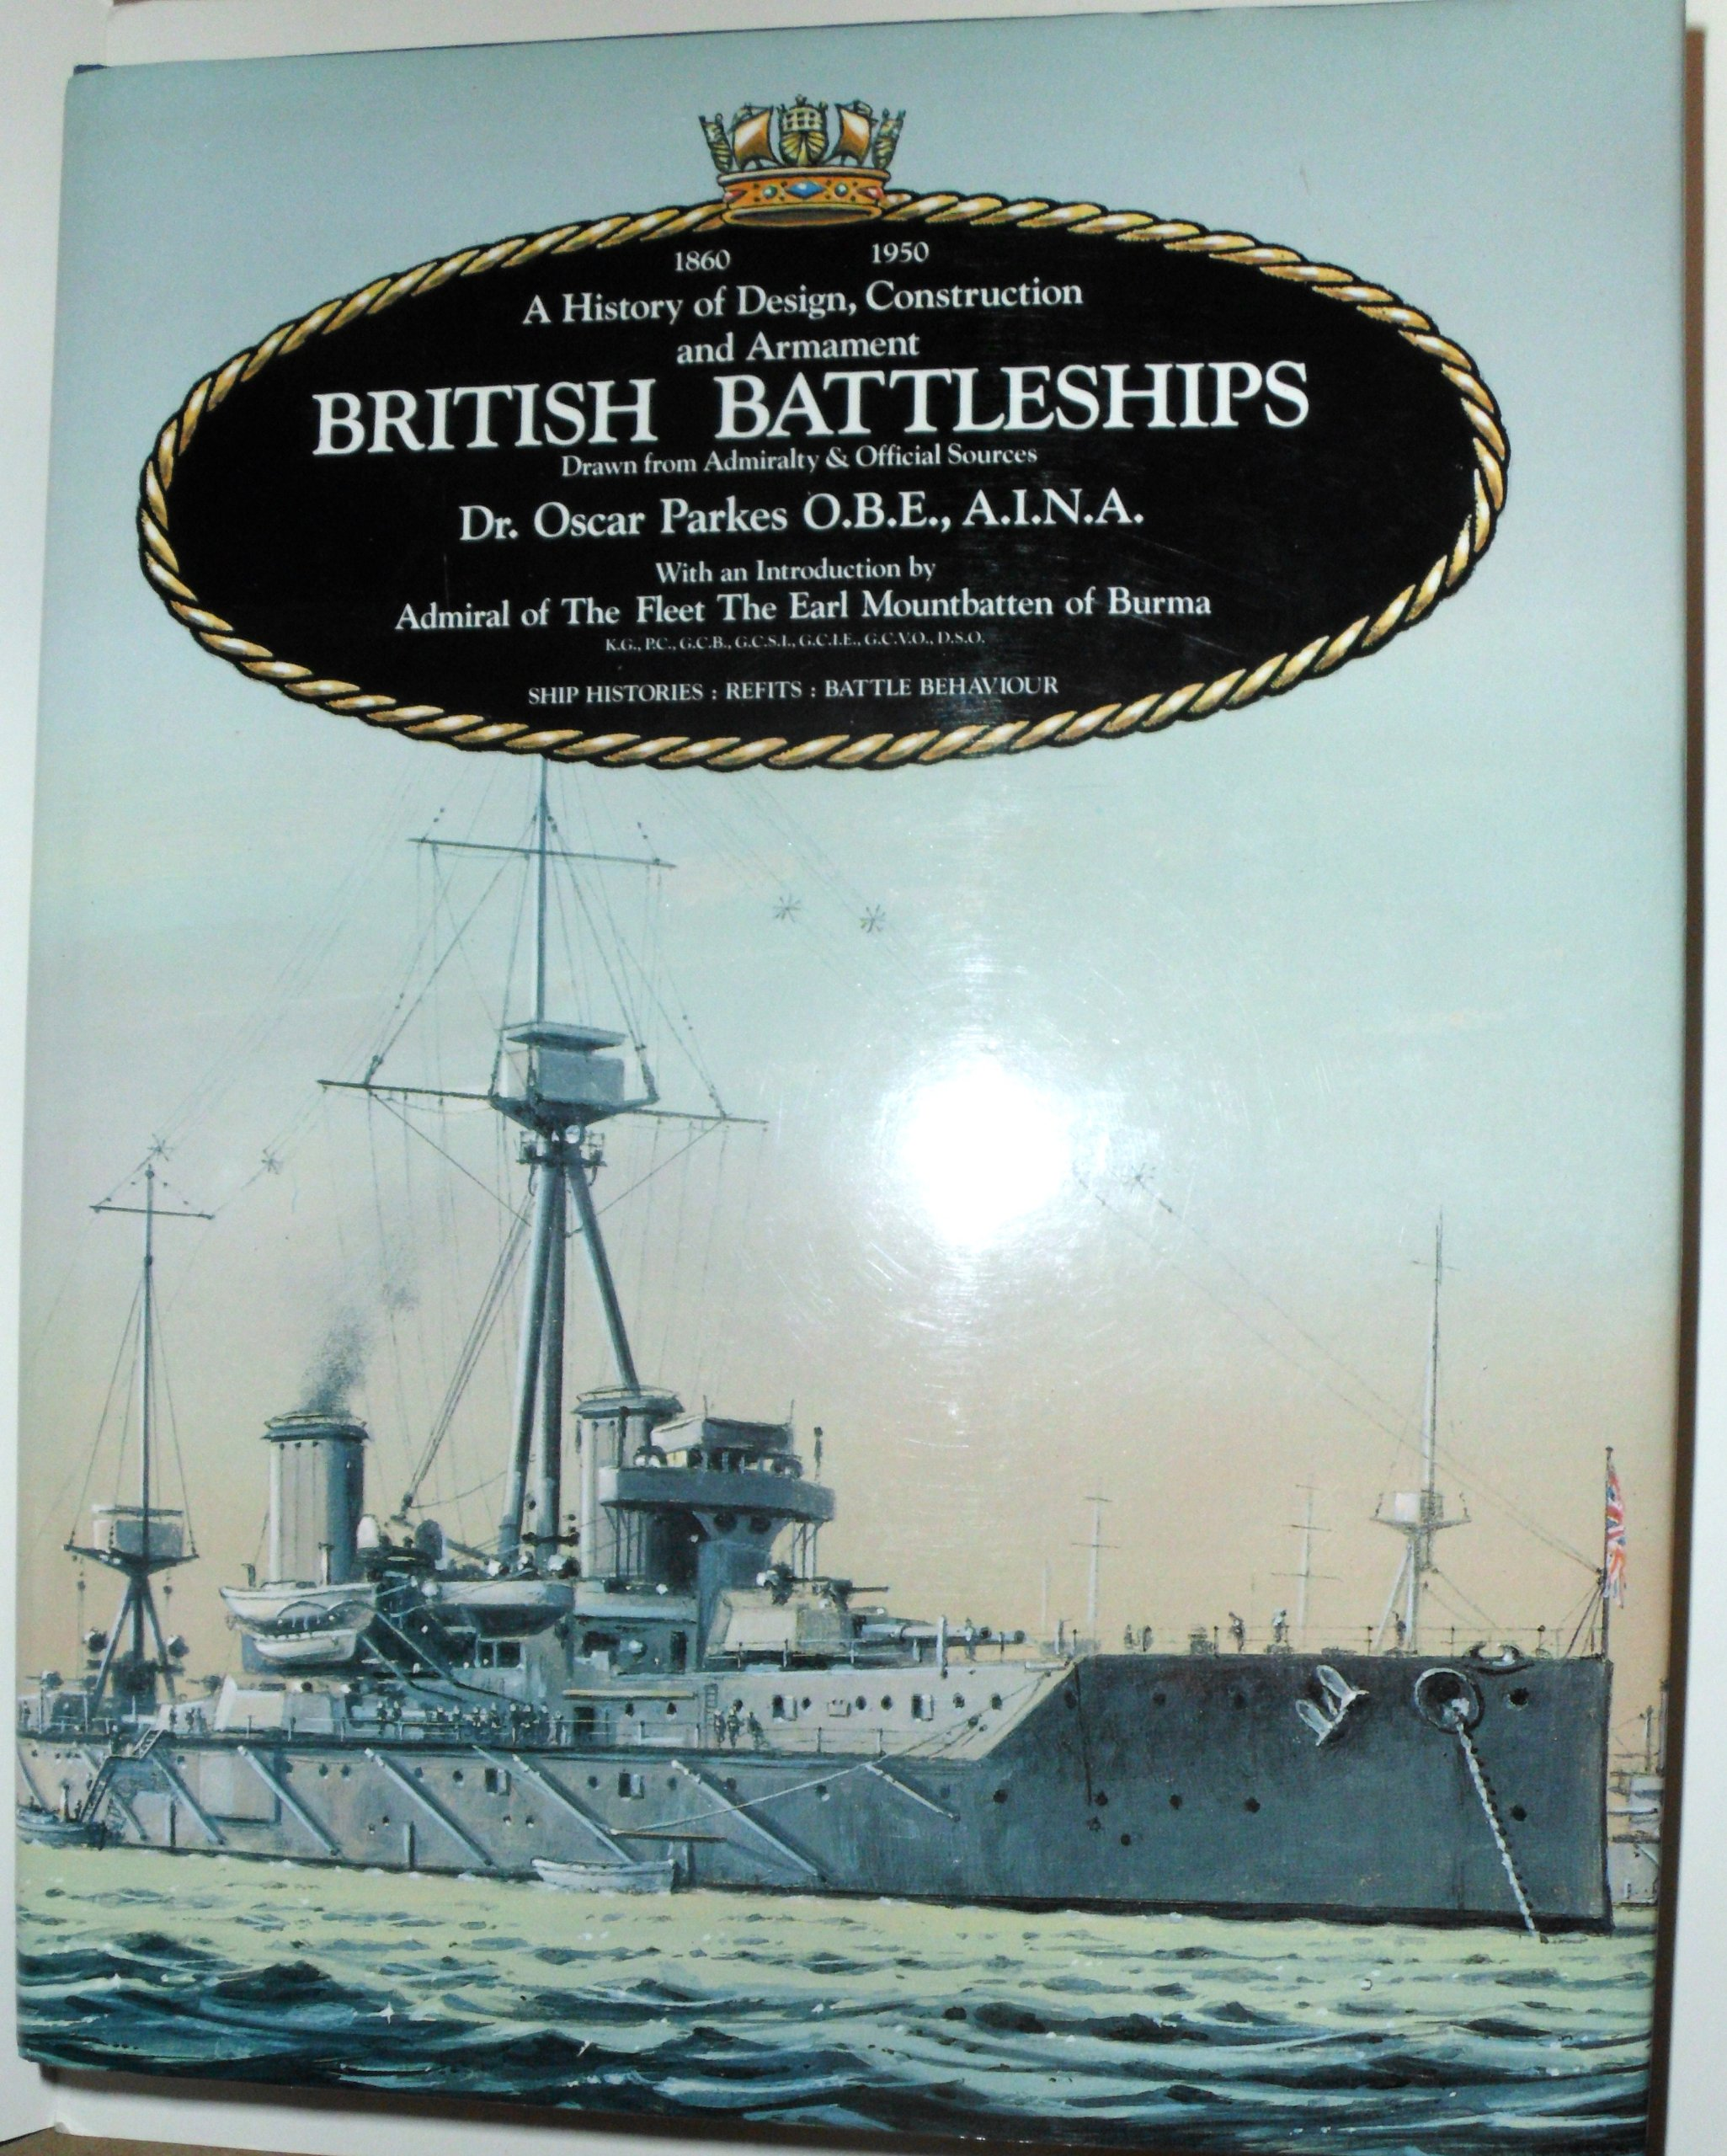 British Battleships: Warrior, 1860 To Vanguard, 1950 A History Of Design,  Construction And Armament: Oscar Parkes: 9781557500755: Amazon: Books